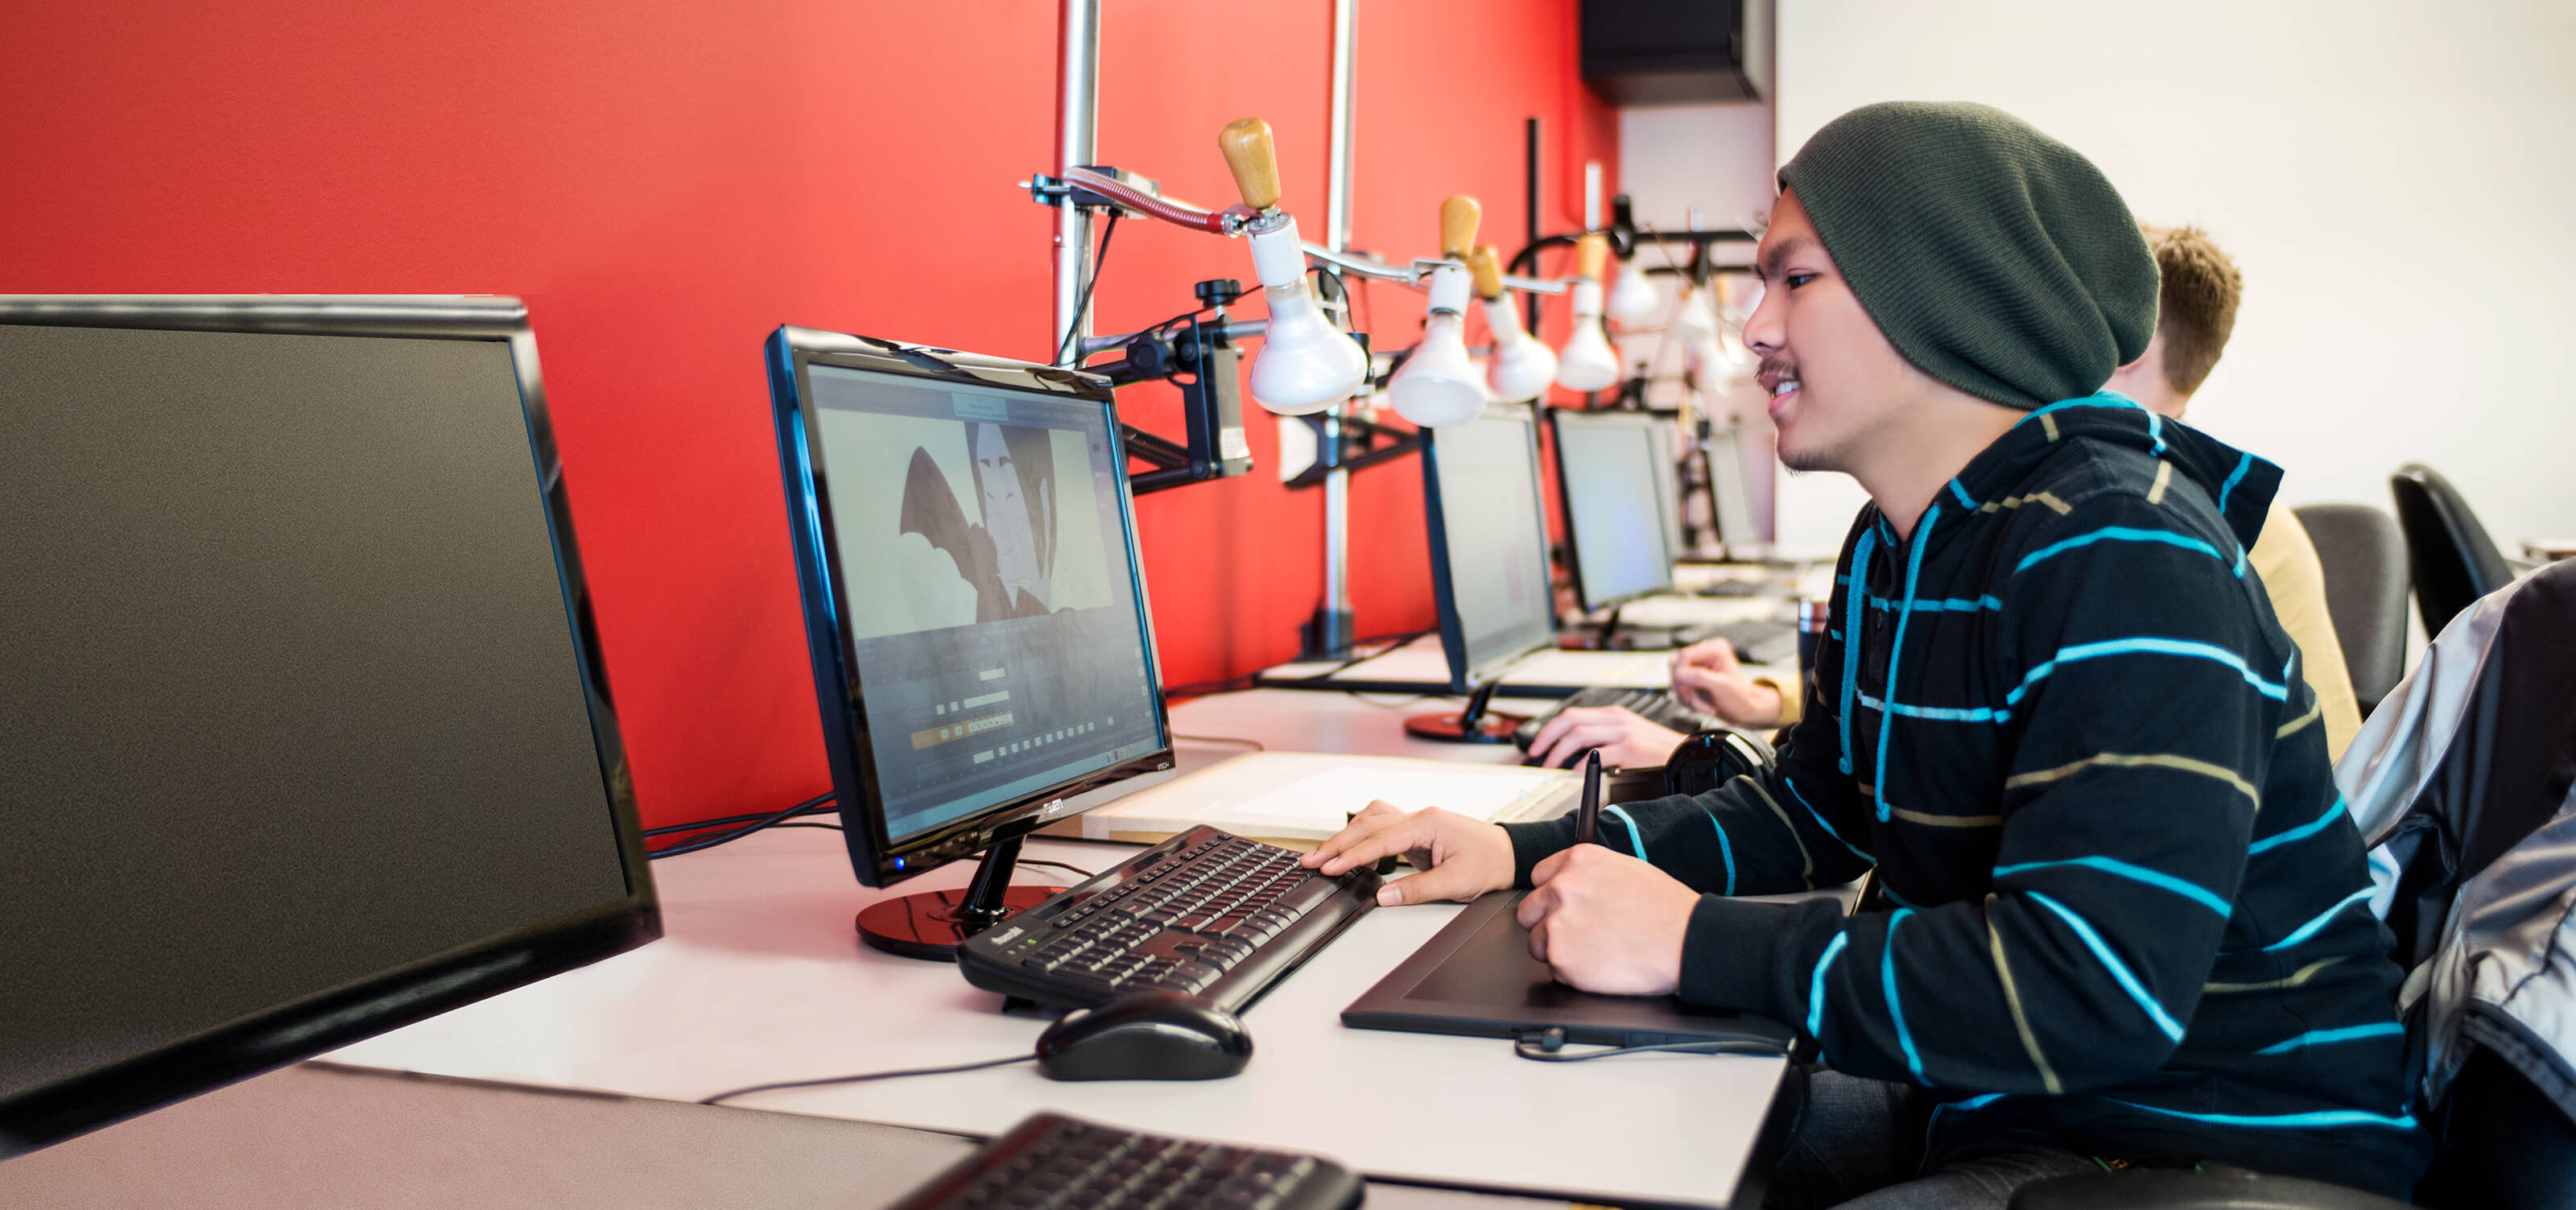 A DigiPen student smiling as he works on a computer animation